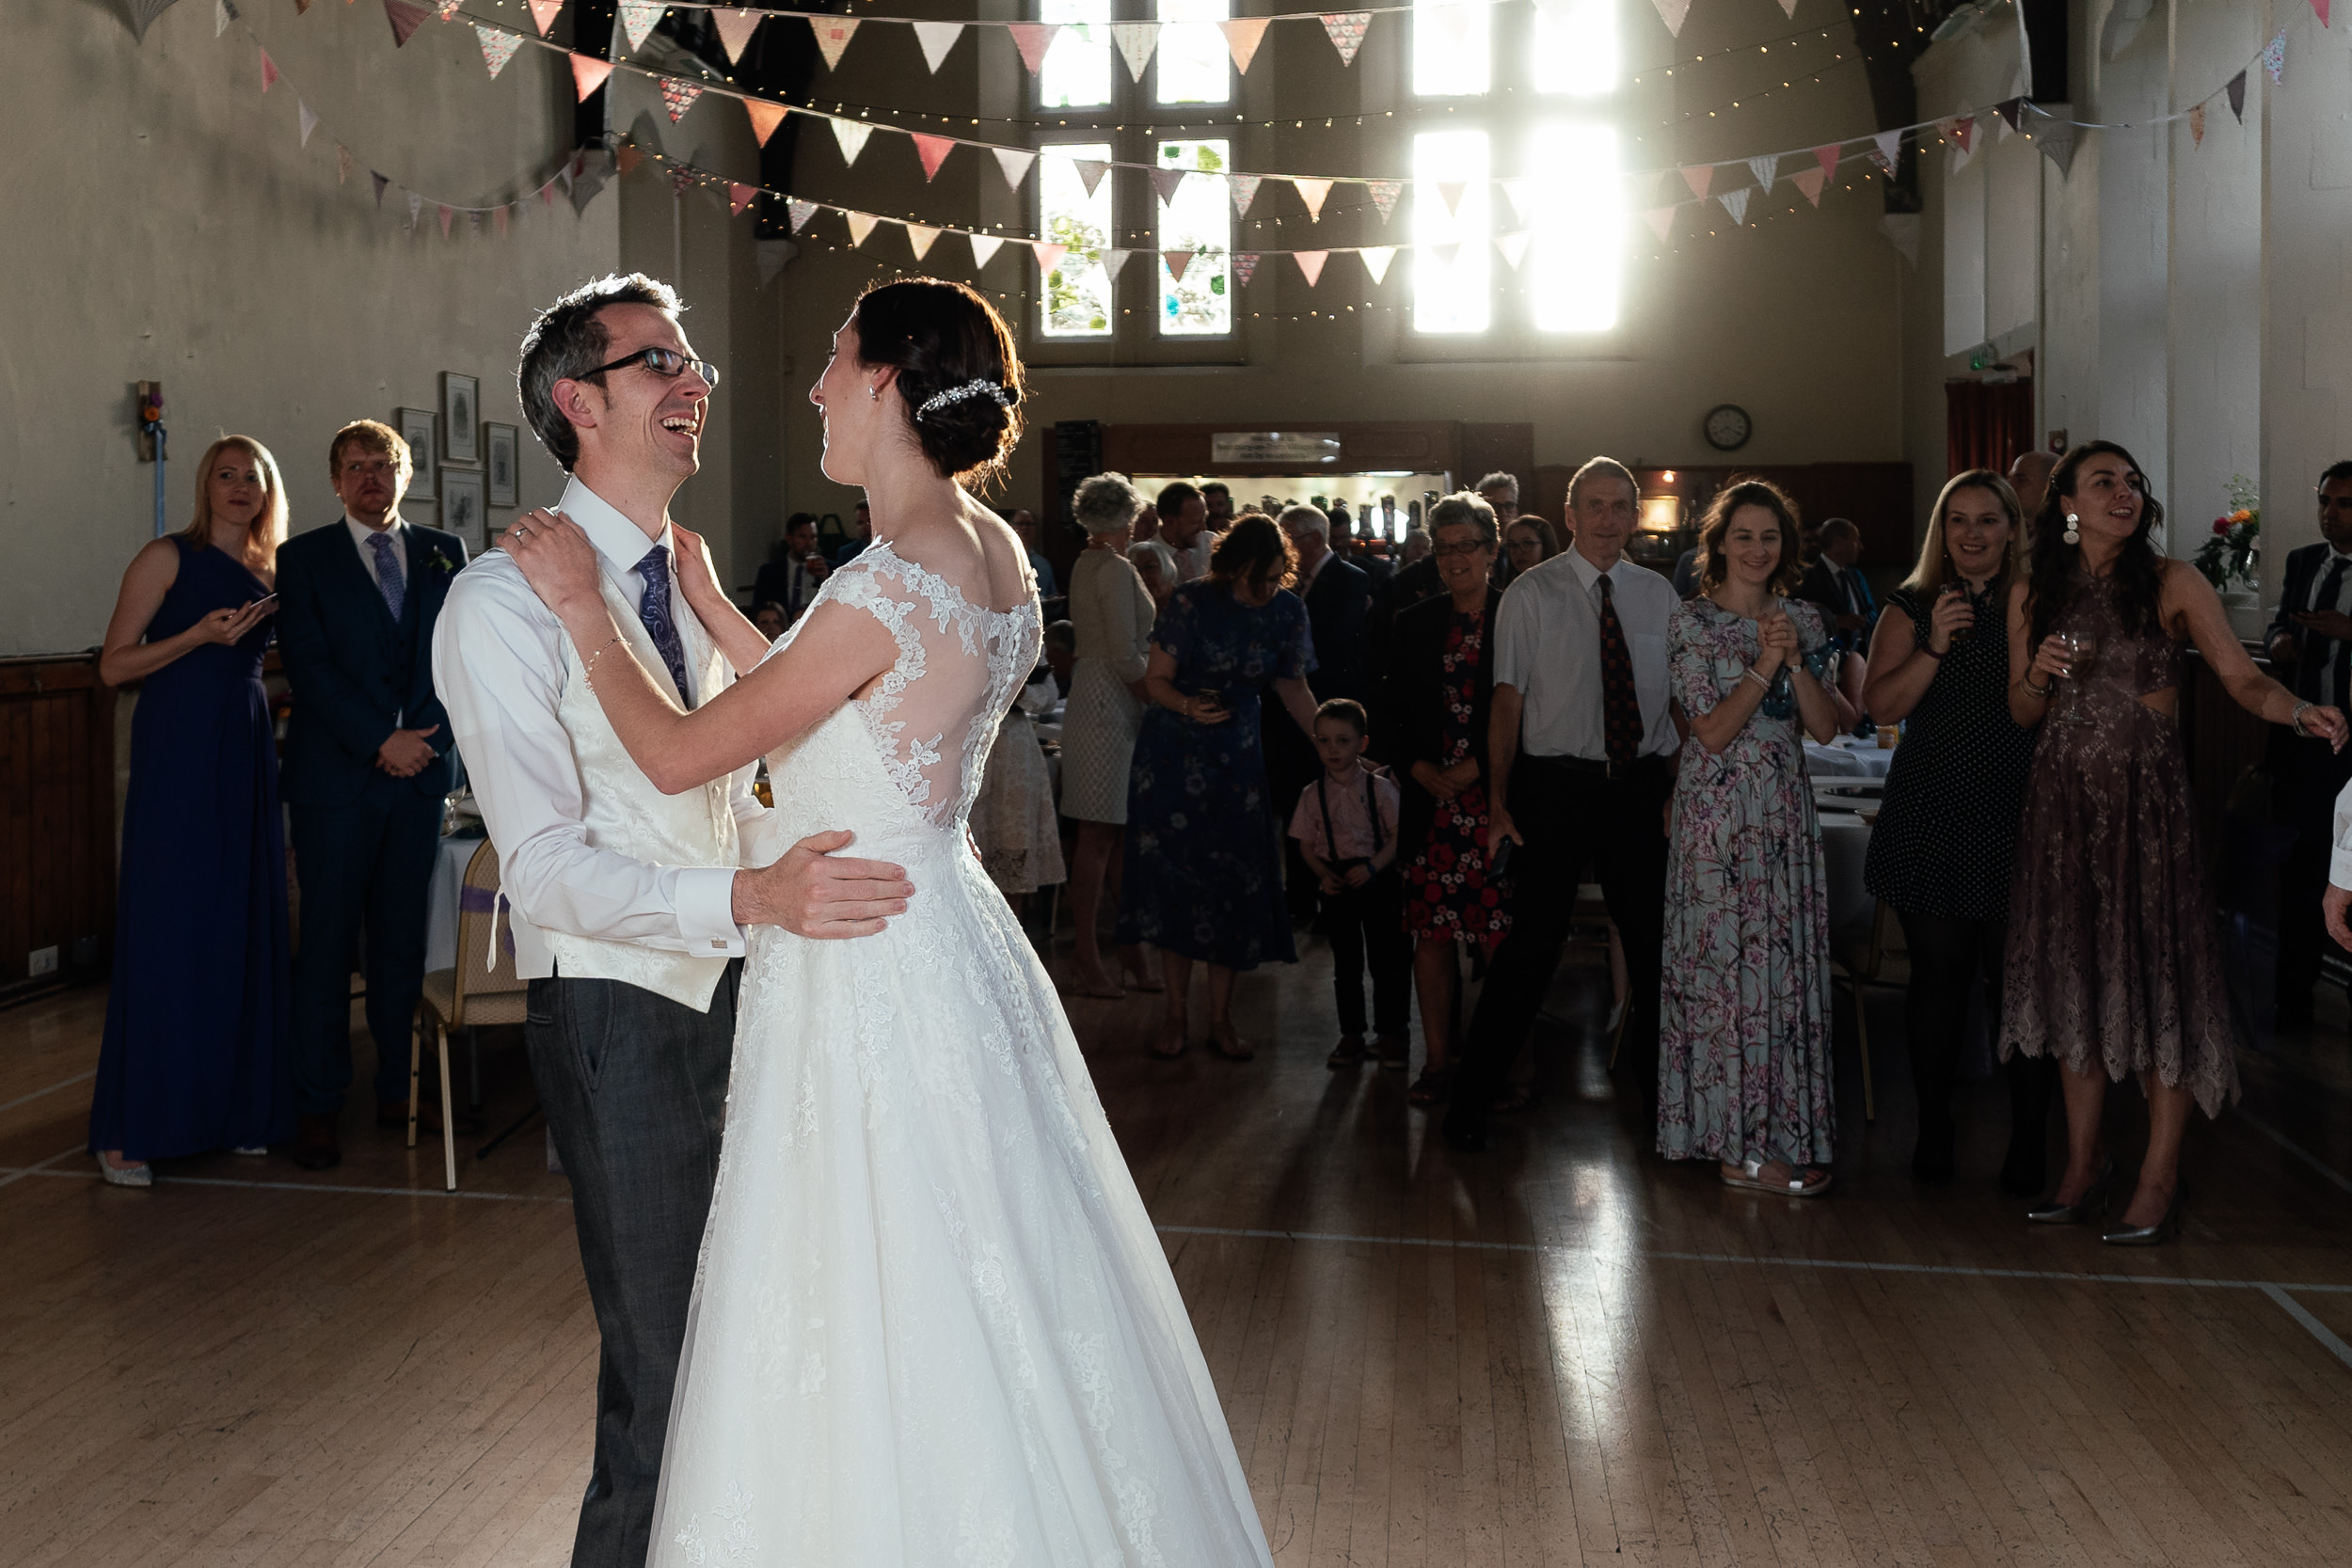 Westbury on Trym Wedding - The first dance of the Bride and Groom